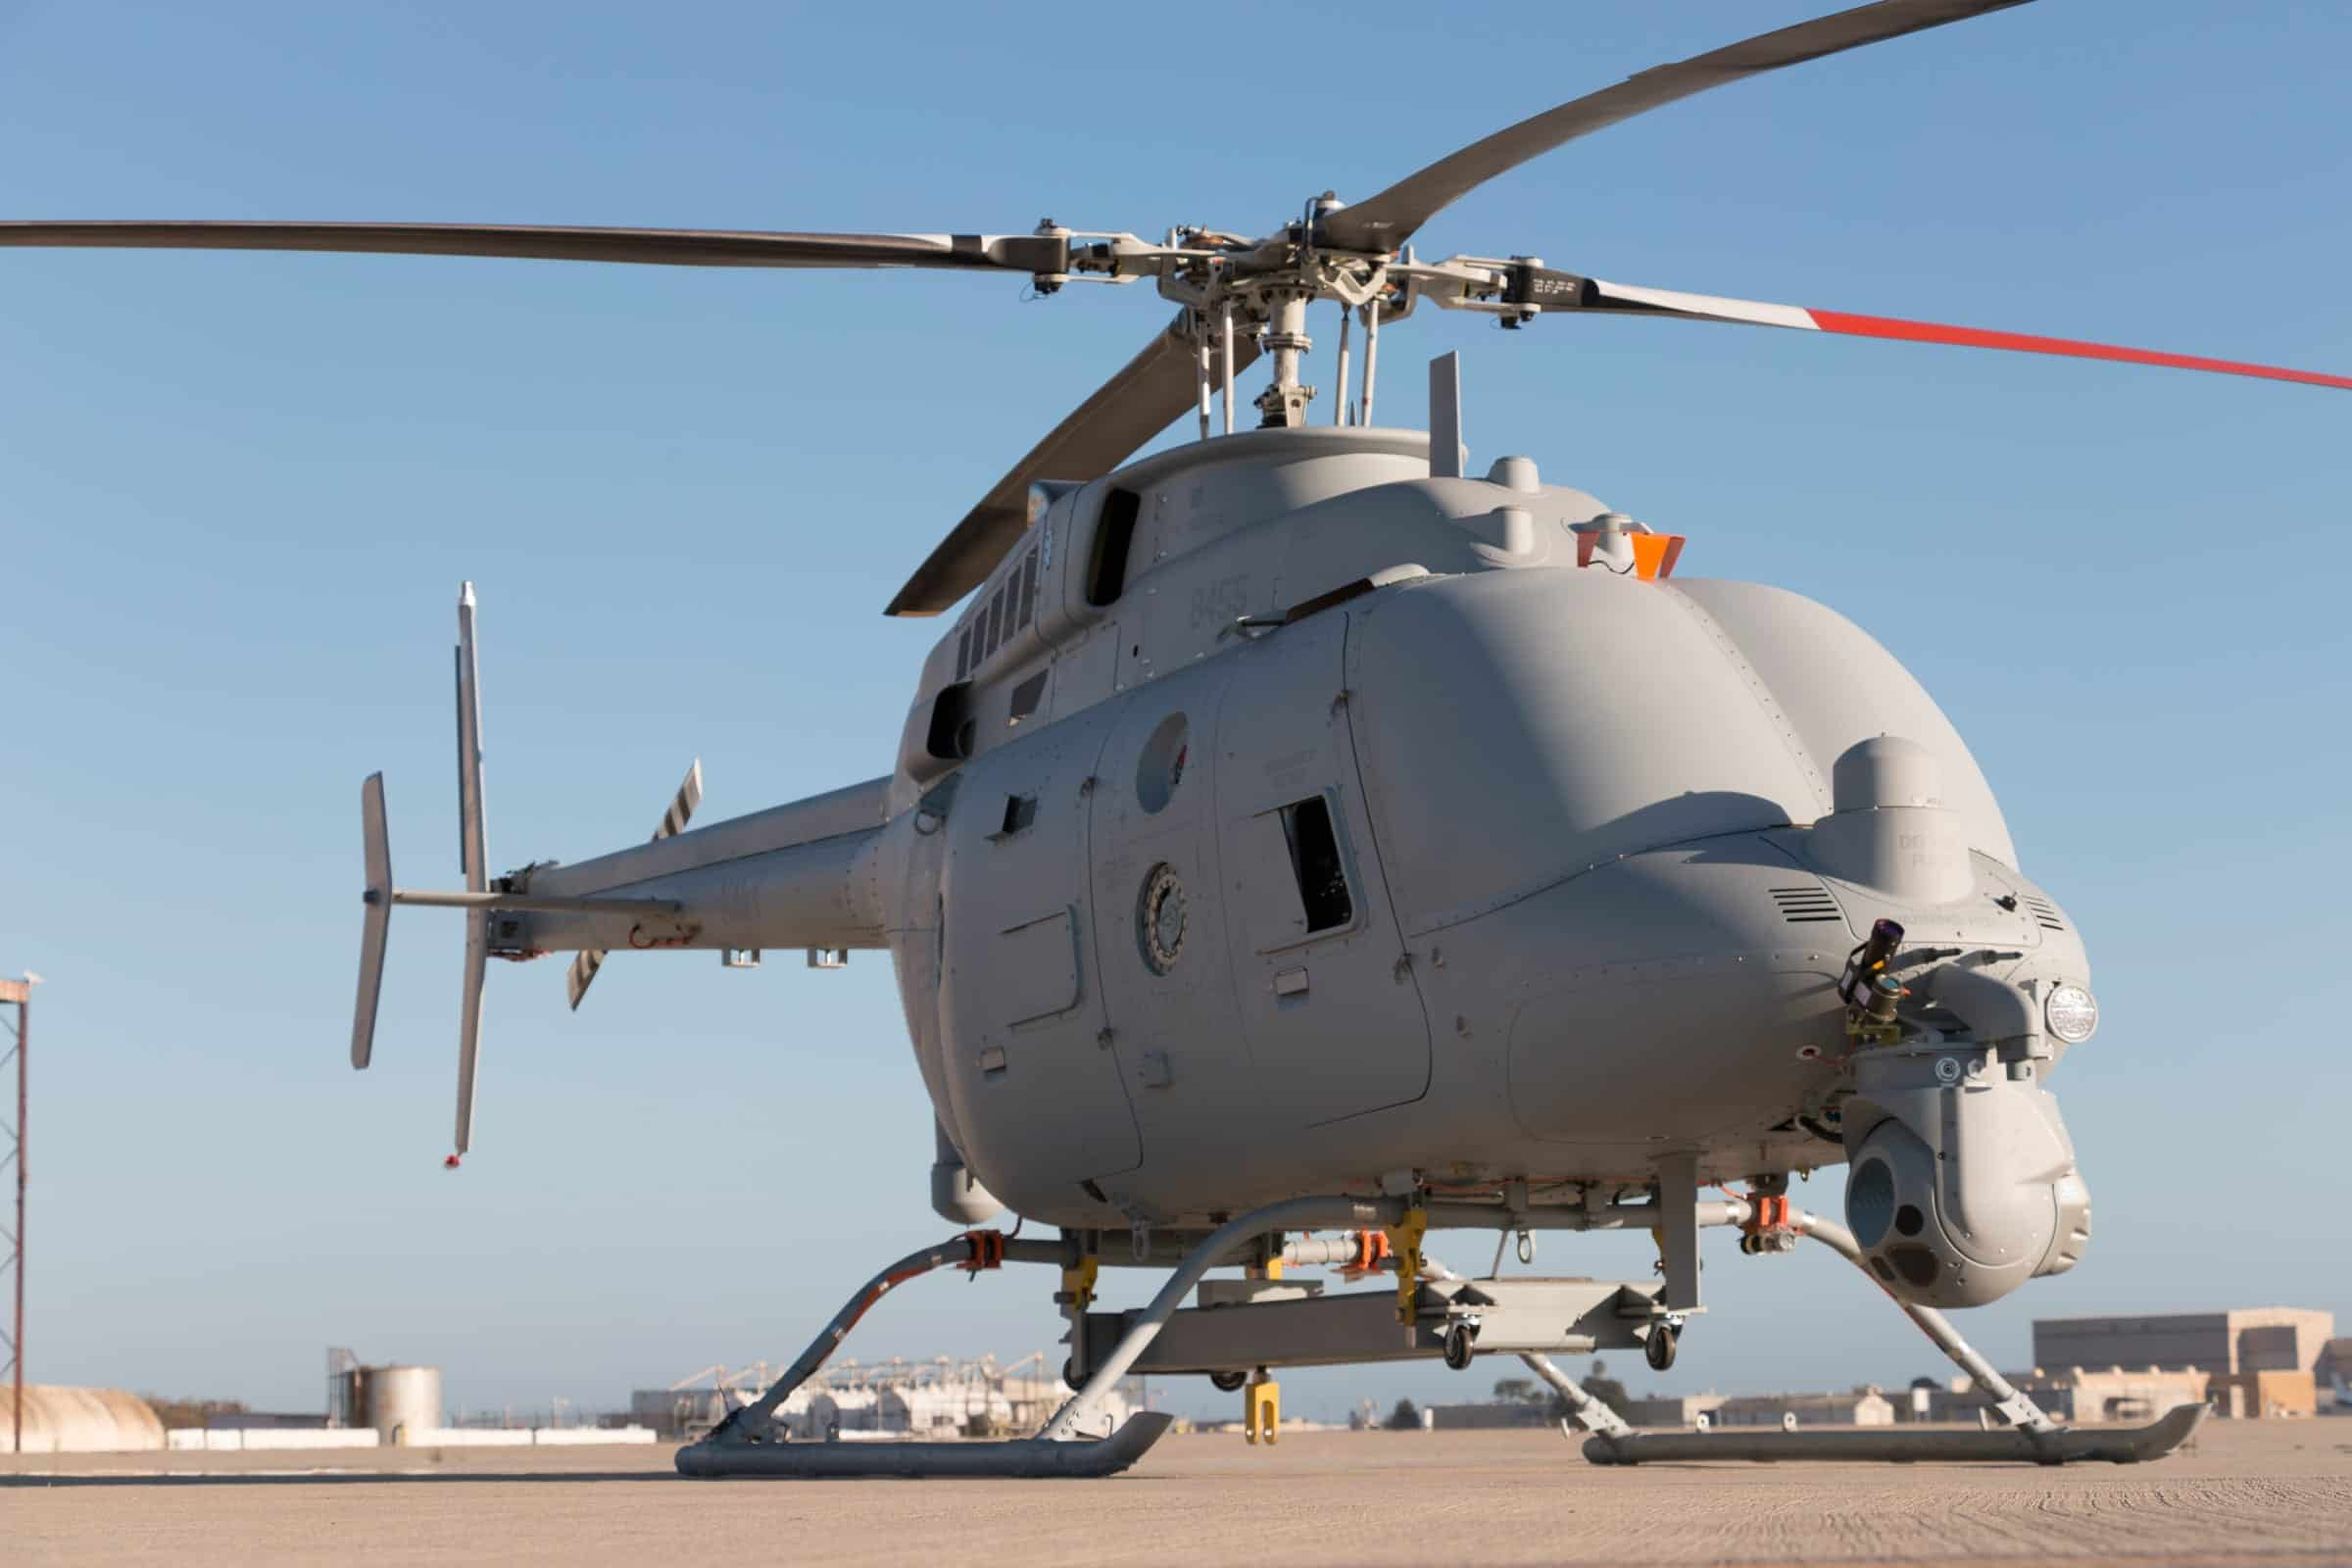 transformer helicopter with Northrop Grumman Mq 8c Fire Scout  Pletes Initial Ground Testing on MECHTECH 20VOYAGER 20SKYHAMMER 20 both 20modes  2029702 moreover 2013 10 01 archive as well 154162 The Power Grid Of The Future Will Be Controlled By Neurons In A Petri Dish furthermore Decepticon Ravage Photo likewise ARKHAM KNIGH S GUNSHIP 548552933.